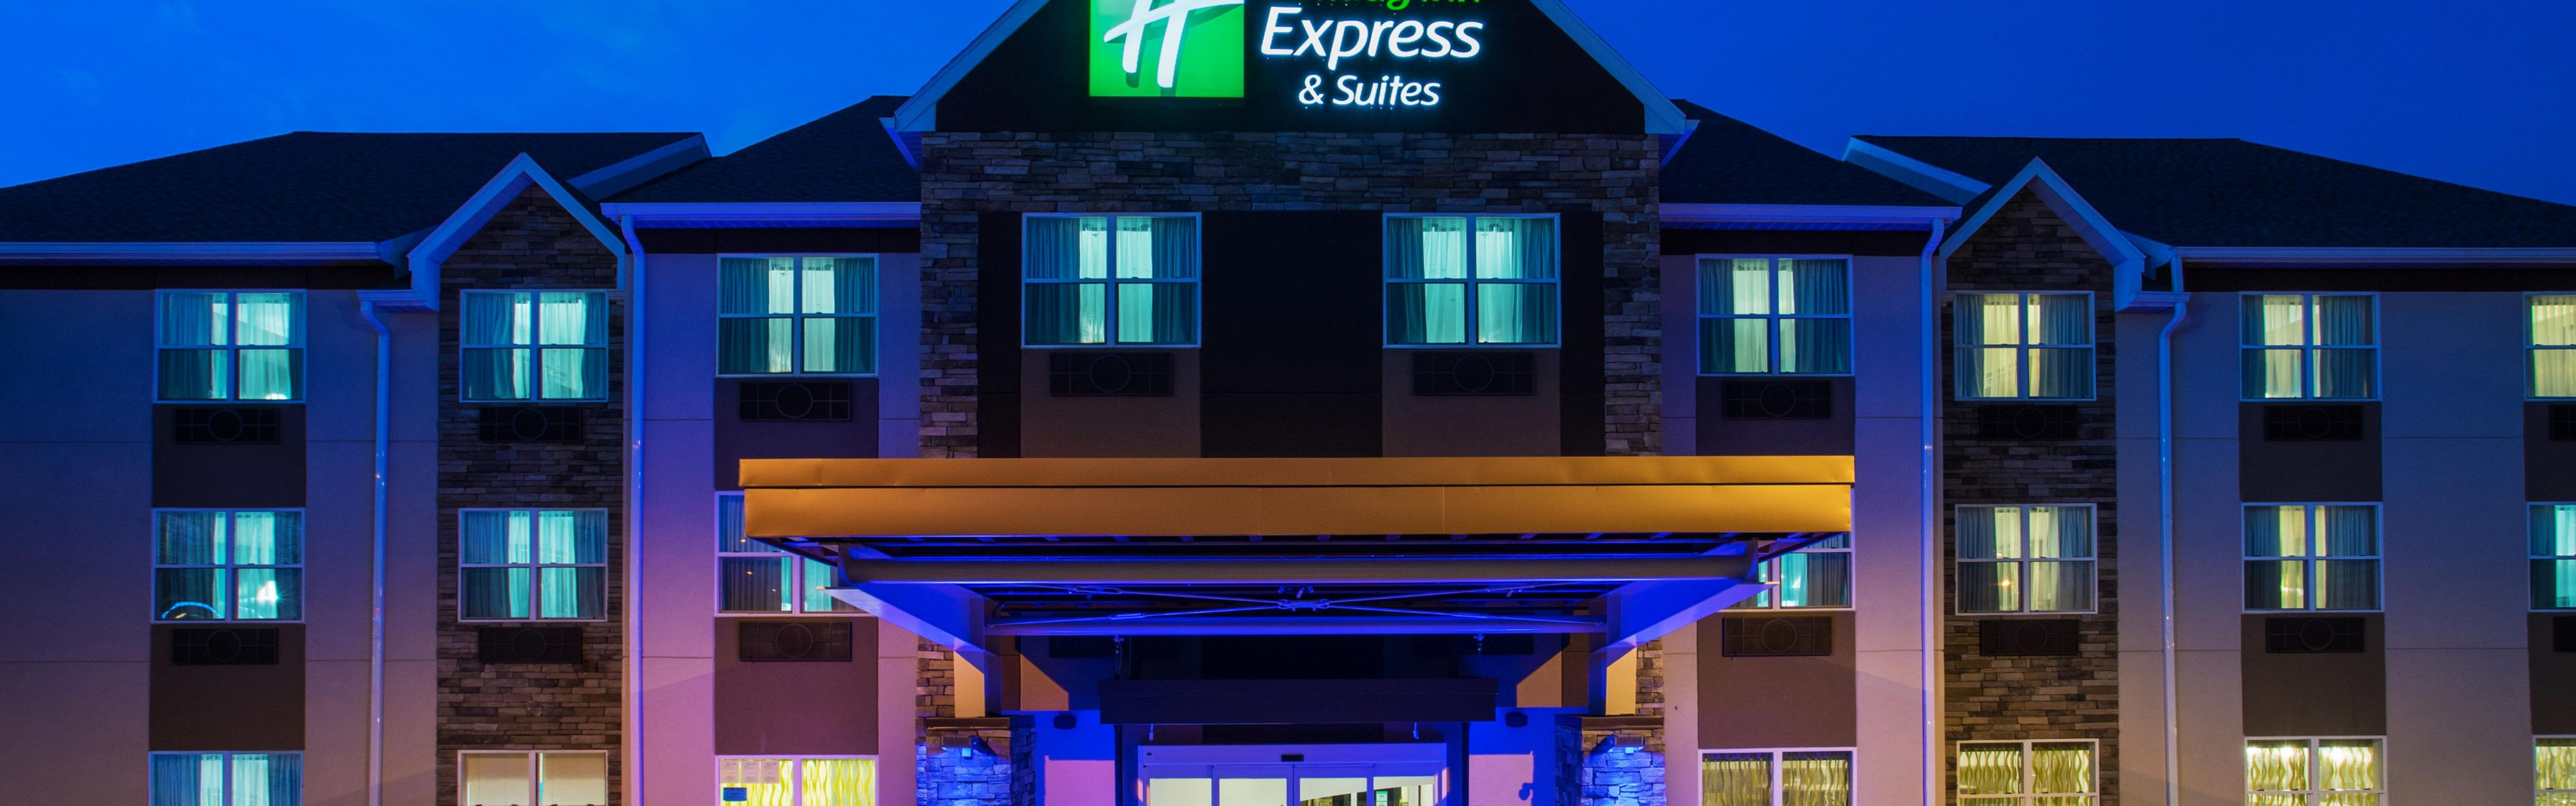 Cash Pool Santander Holiday Inn Express And Suites Wyomissing Coupons Wyomissing